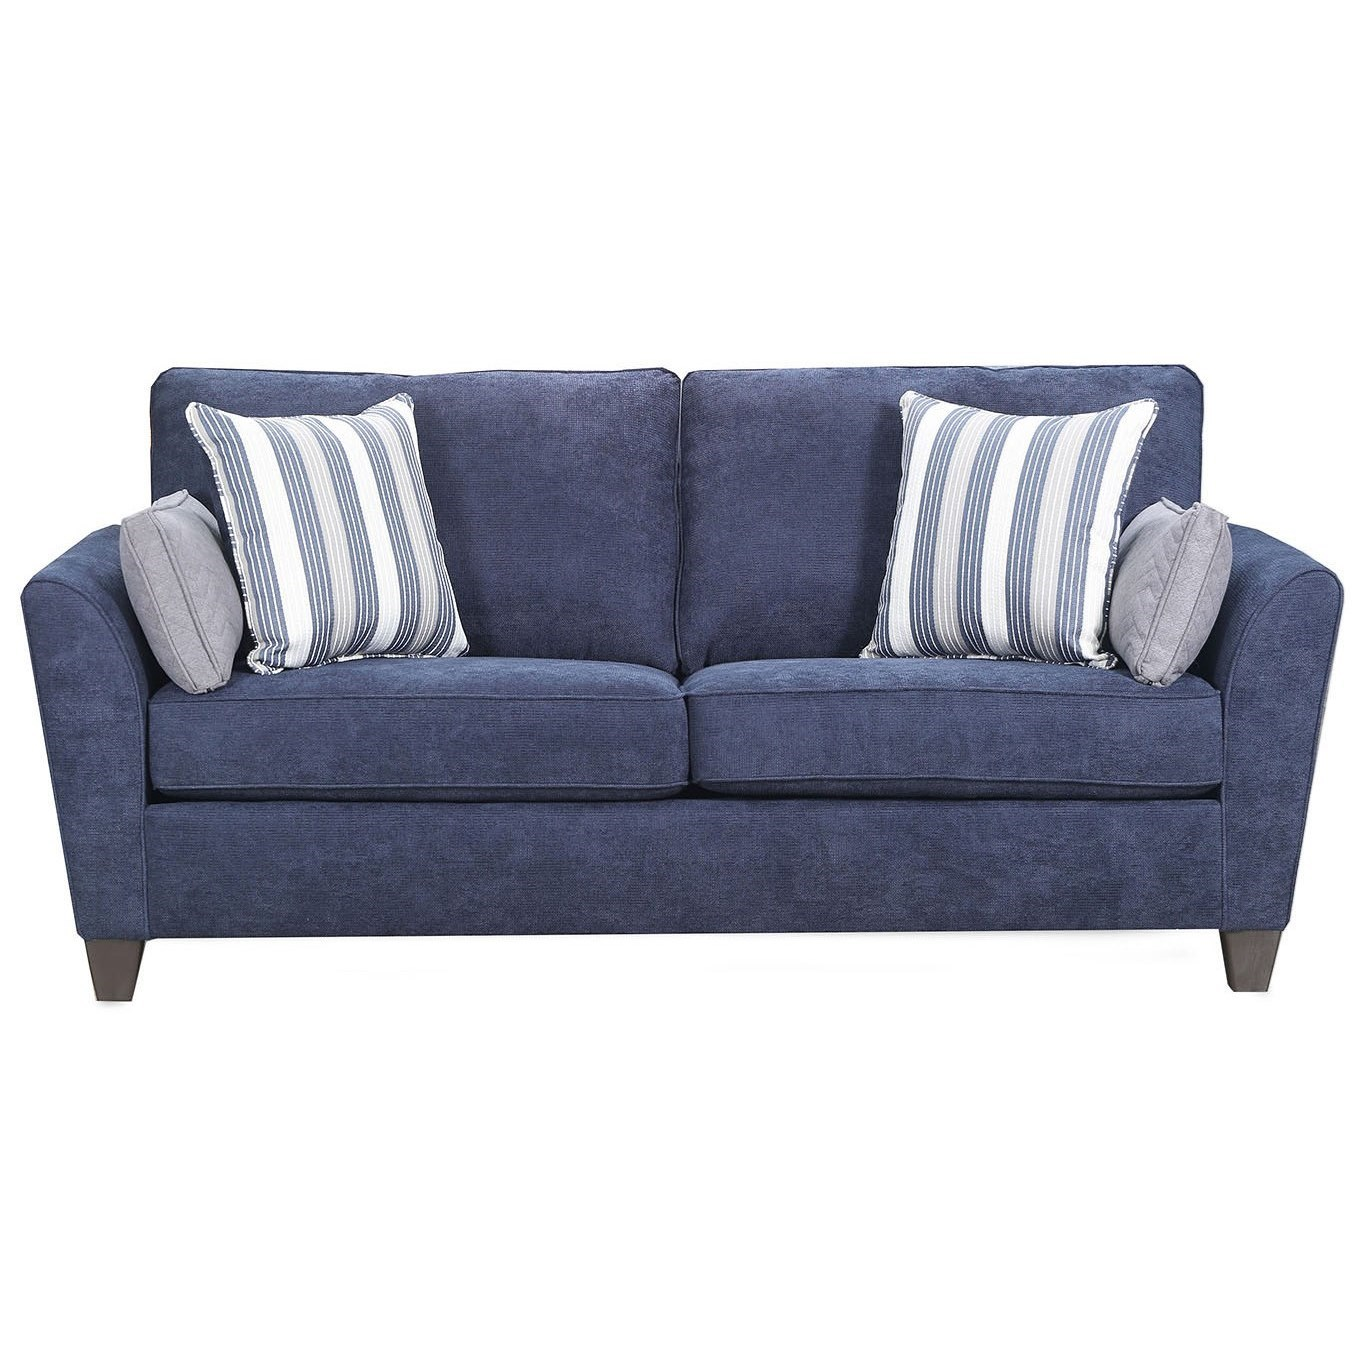 7081 Sofa by Lane at Powell's Furniture and Mattress